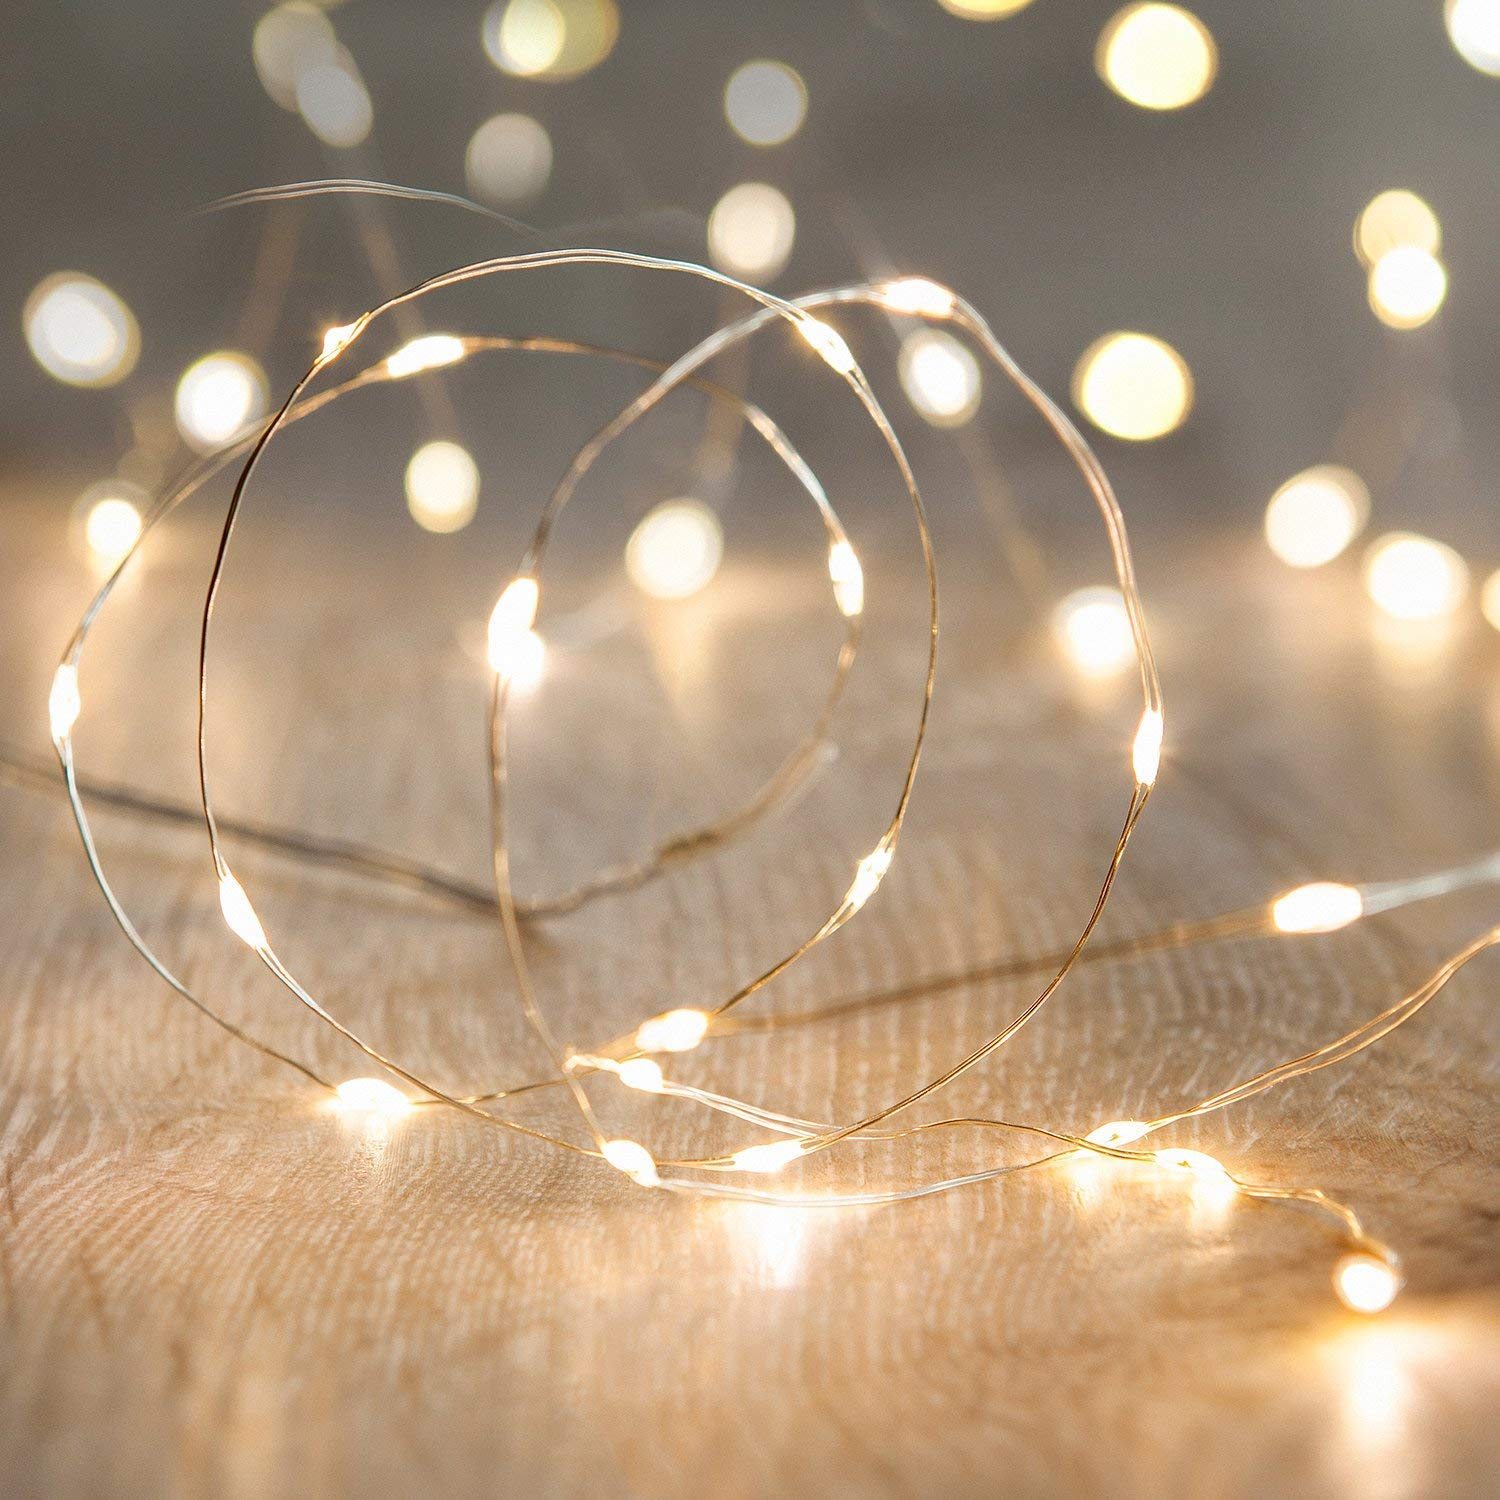 fairy lights instagram props